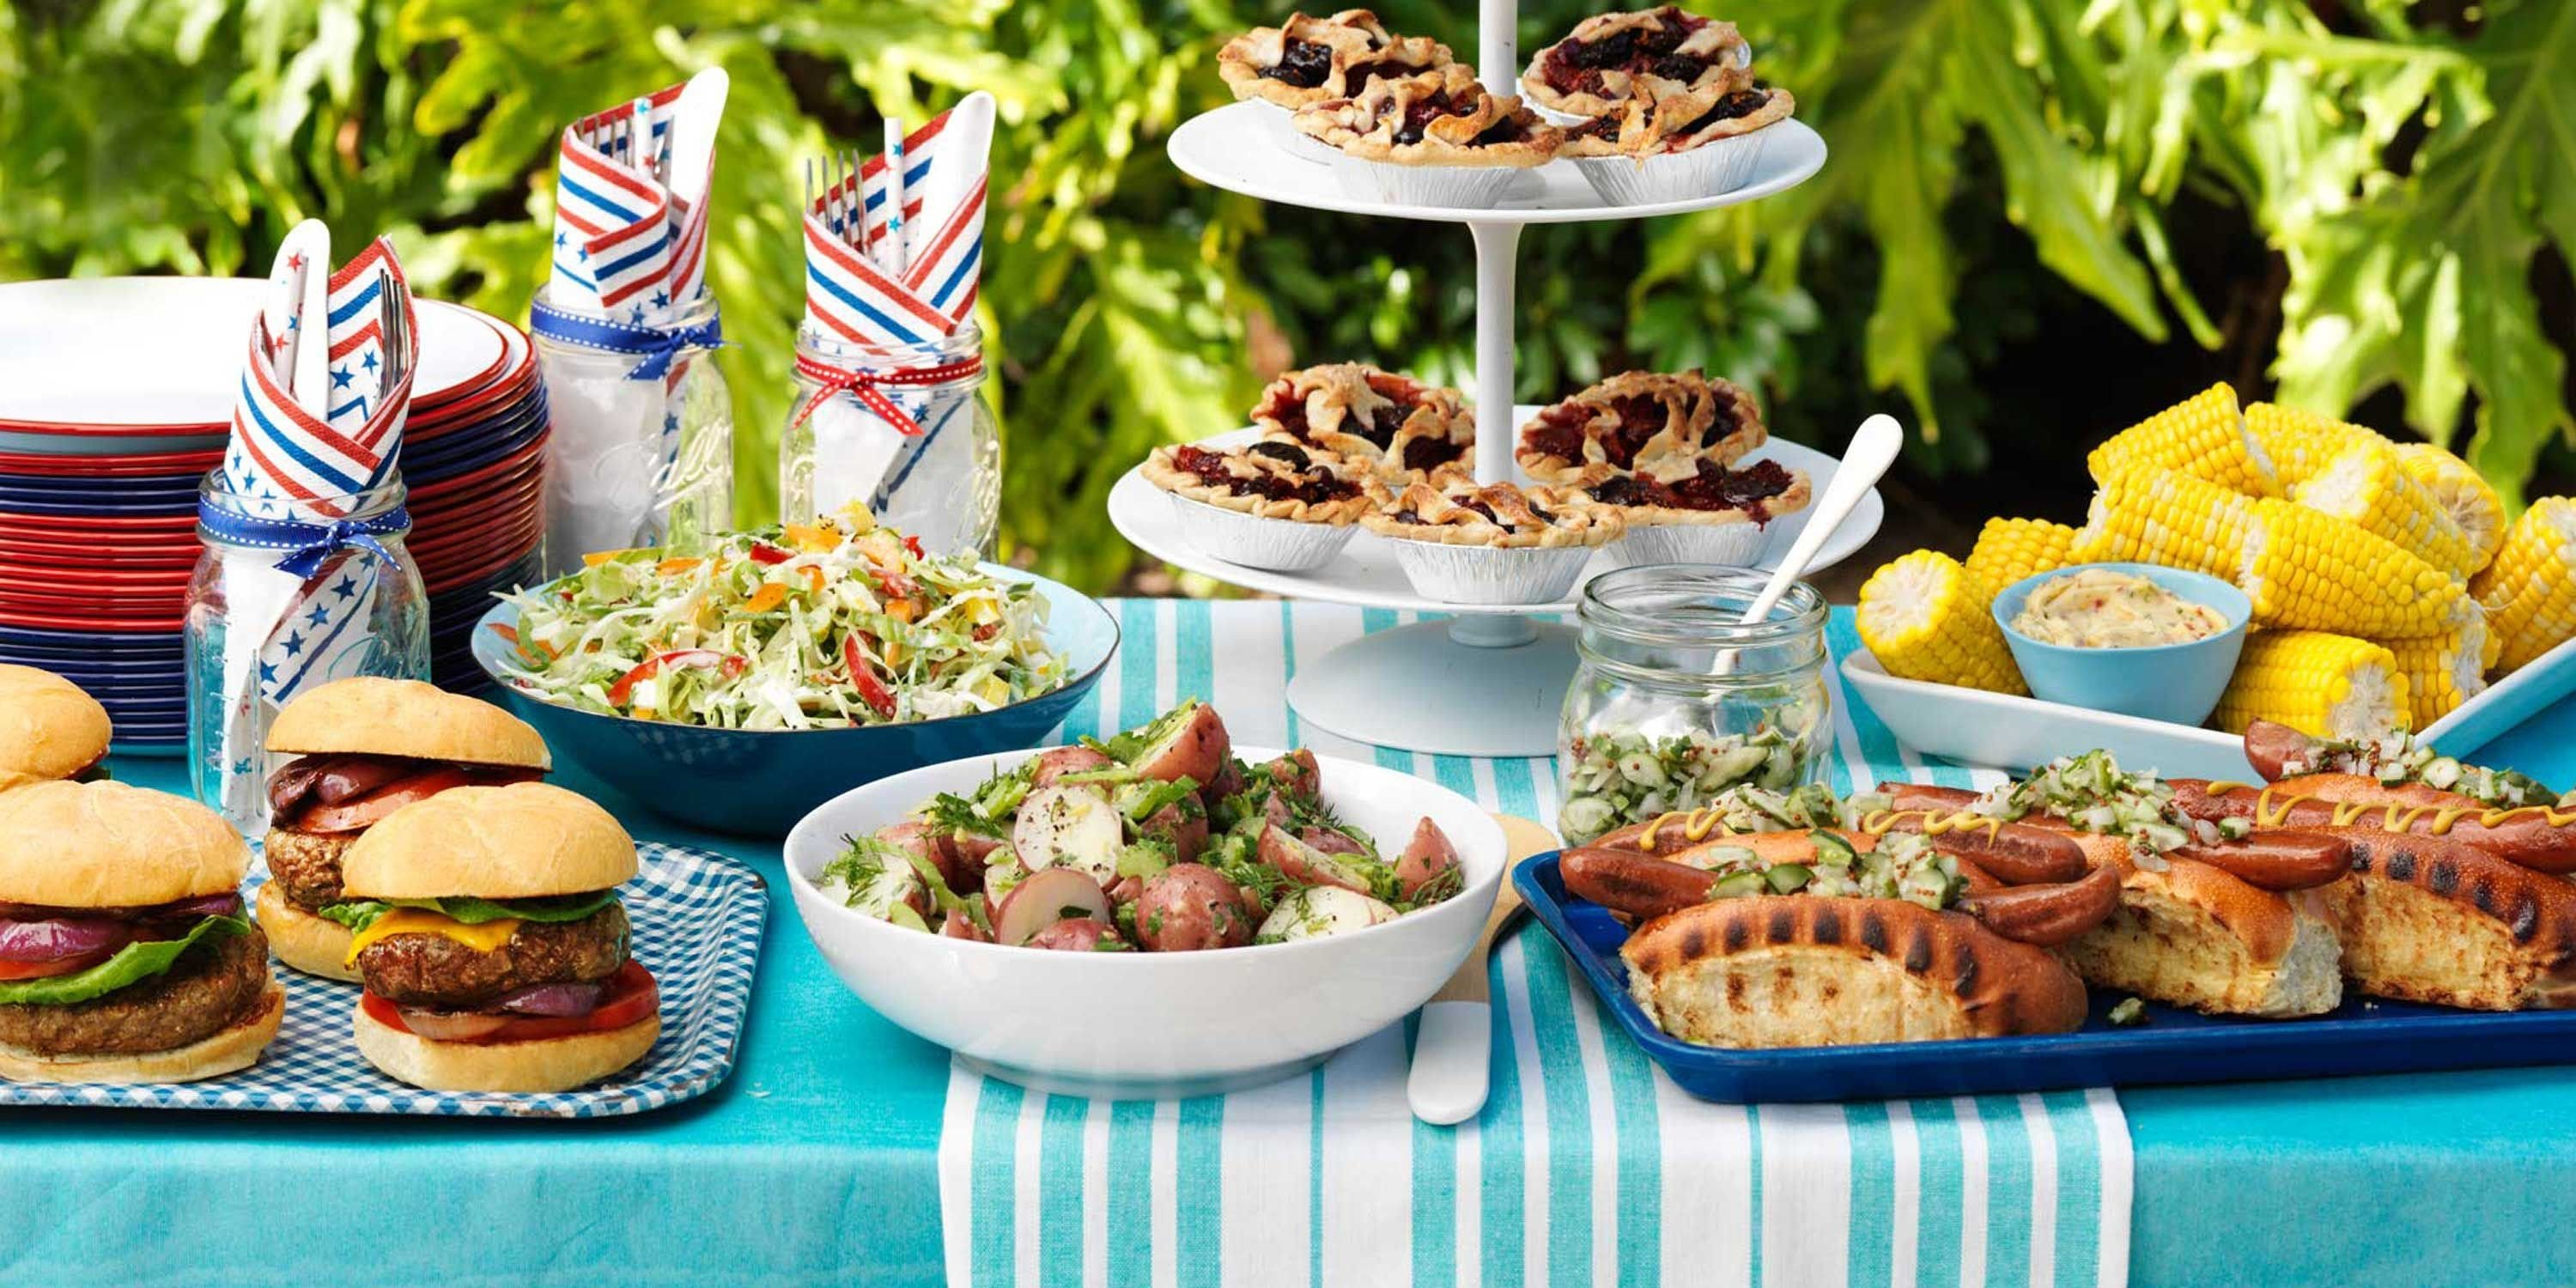 10 Ideal Fourth Of July Cookout Ideas 24 4th of july party ideas food decor for a fourth of july cookout 3 2020